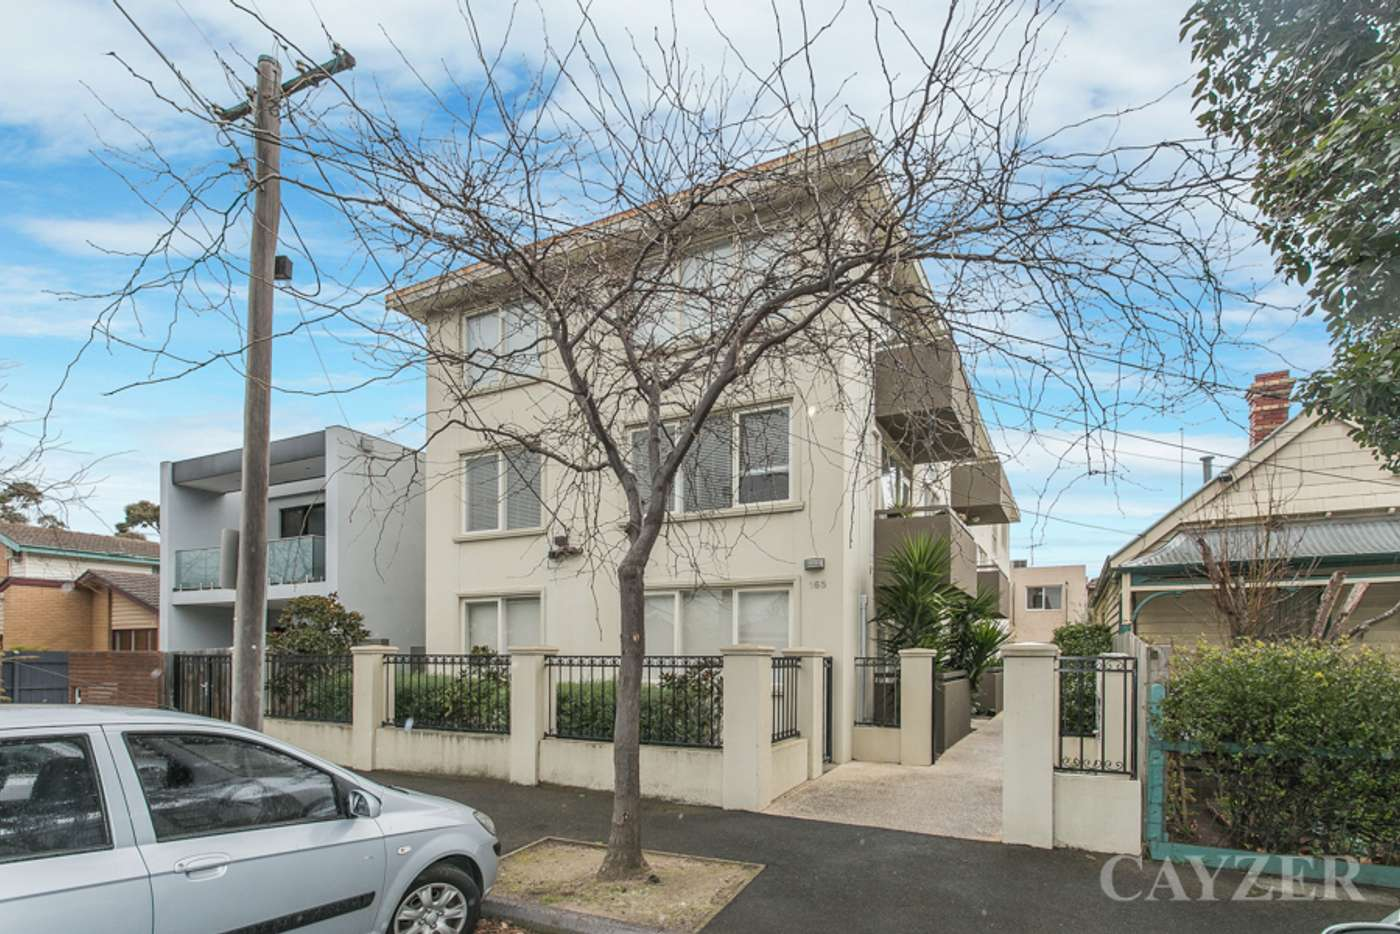 Main view of Homely apartment listing, 12/165 Stokes Street, Port Melbourne VIC 3207